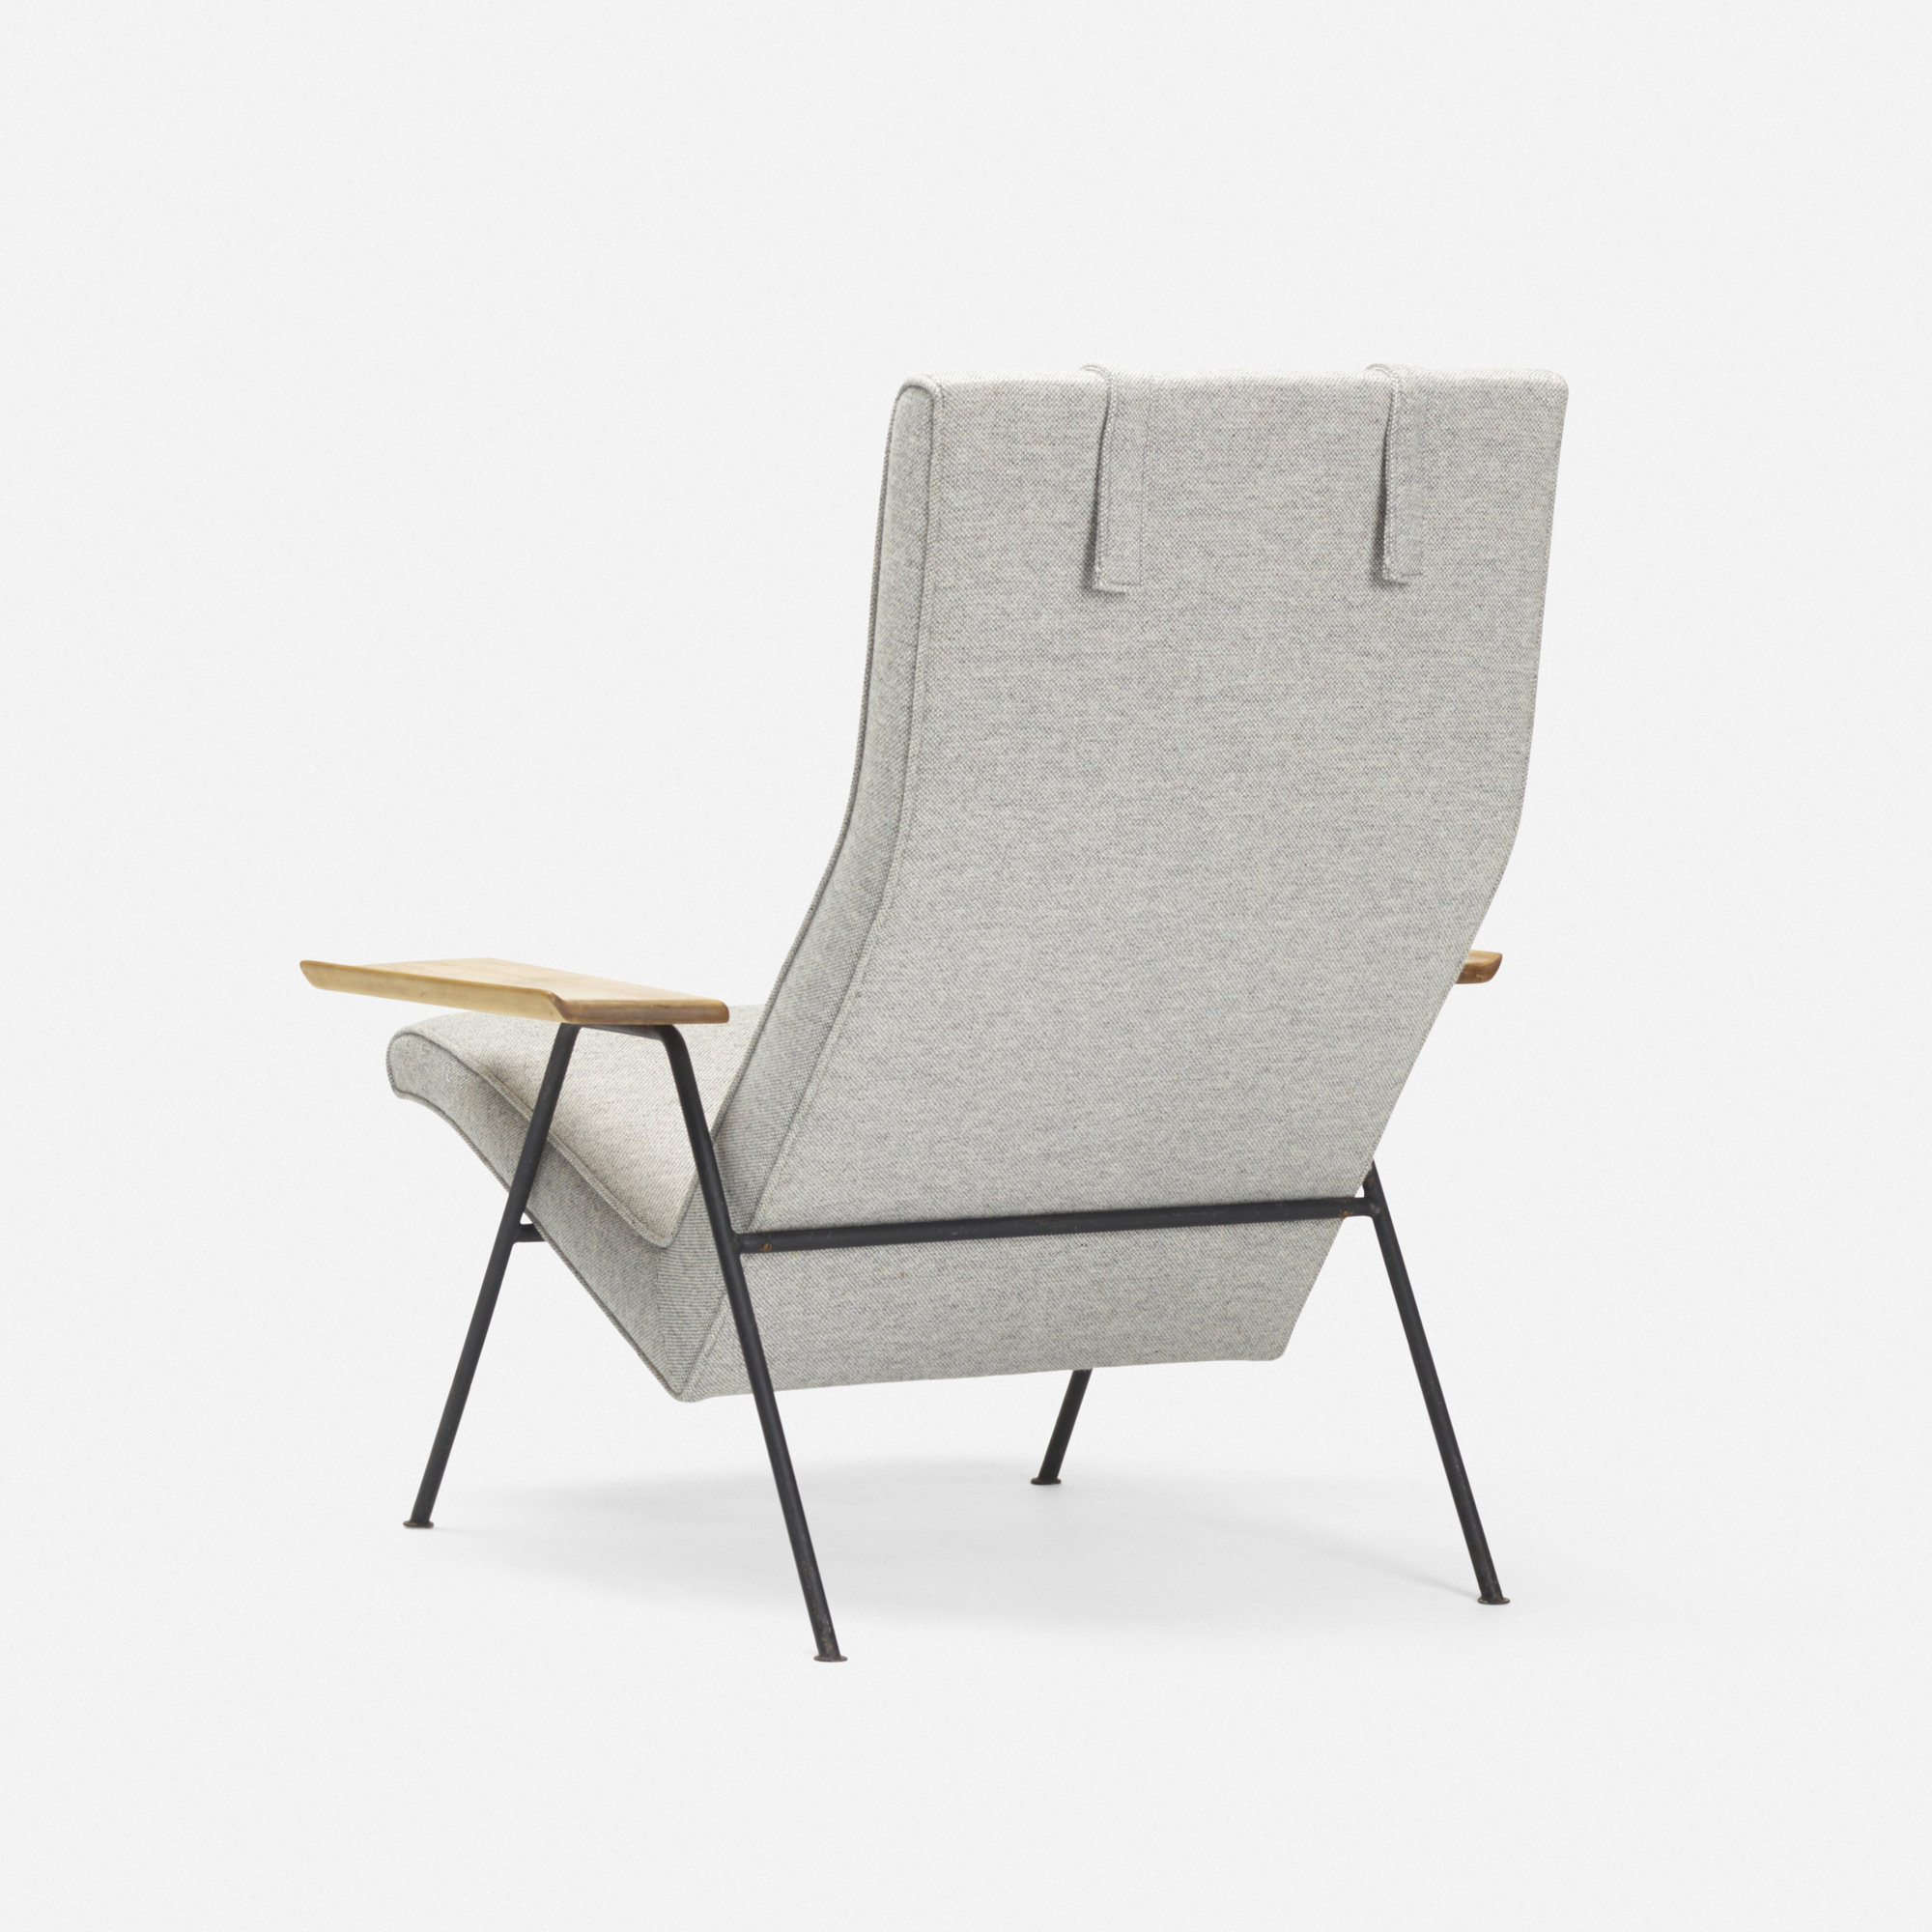 241 robin day lounge chair for Chair design 2000